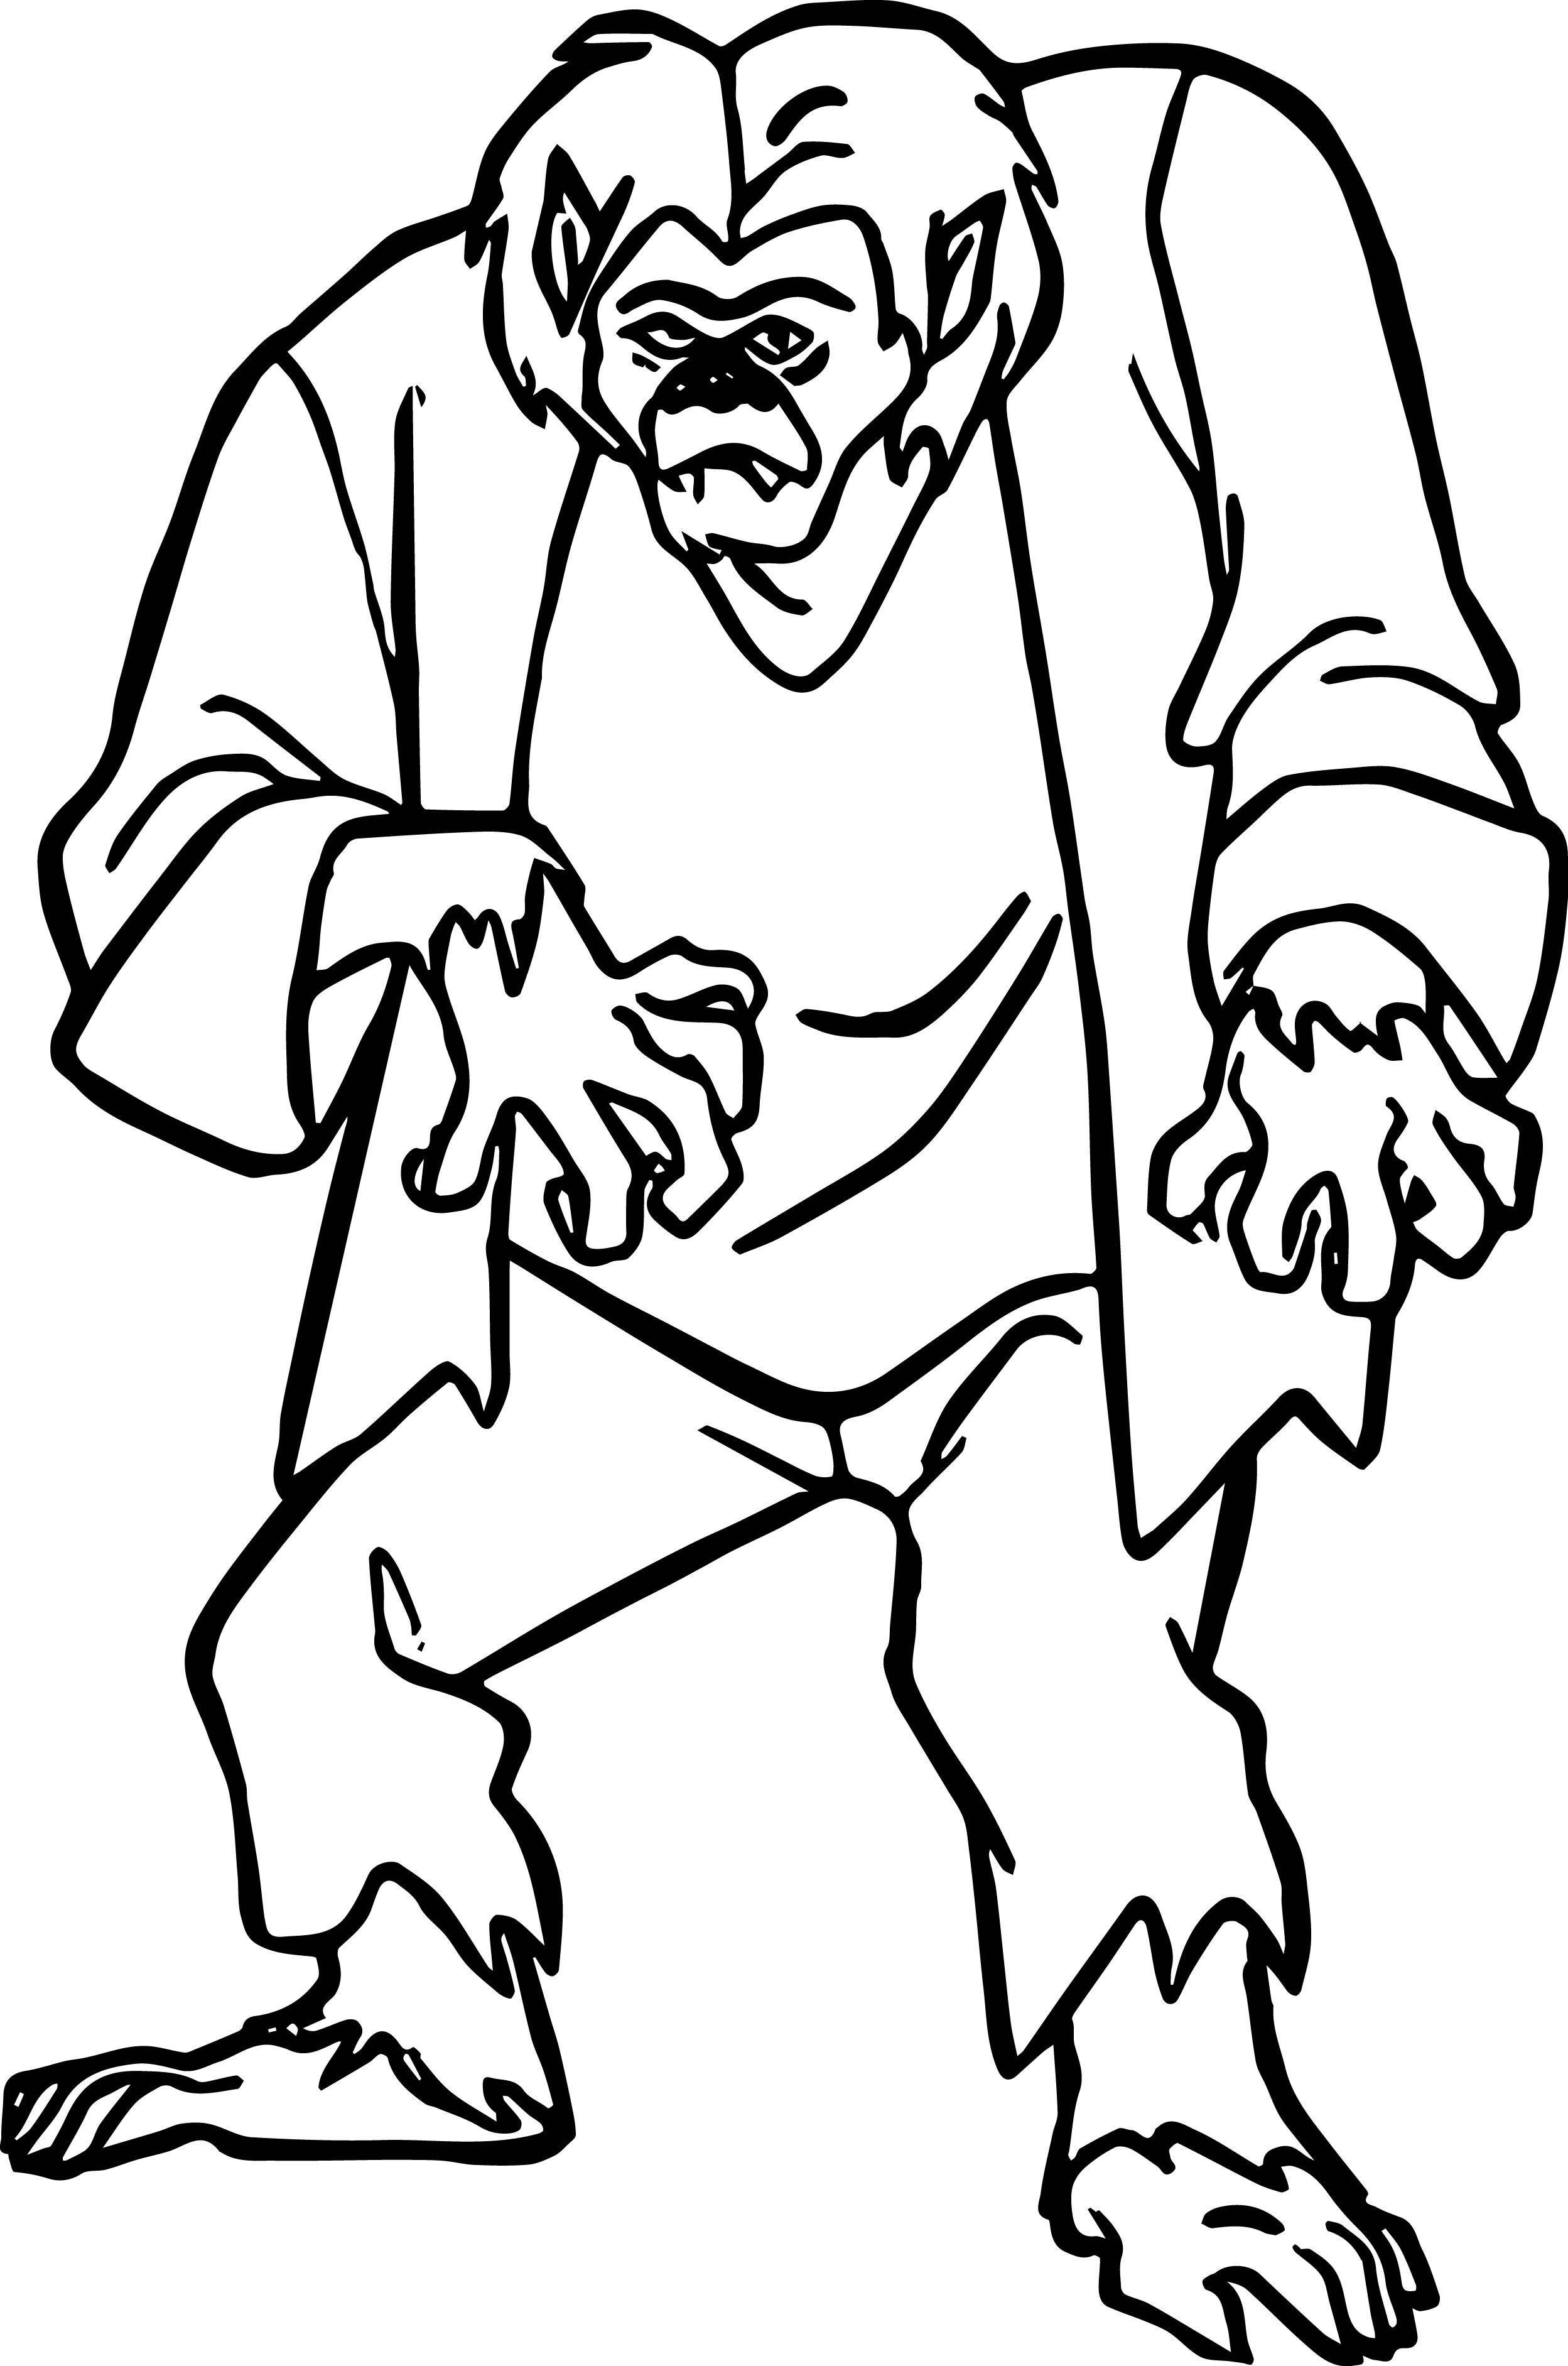 Christmas Coloring Pages Scooby Doo With Nice Creature Page Wecoloringpage Pinterest